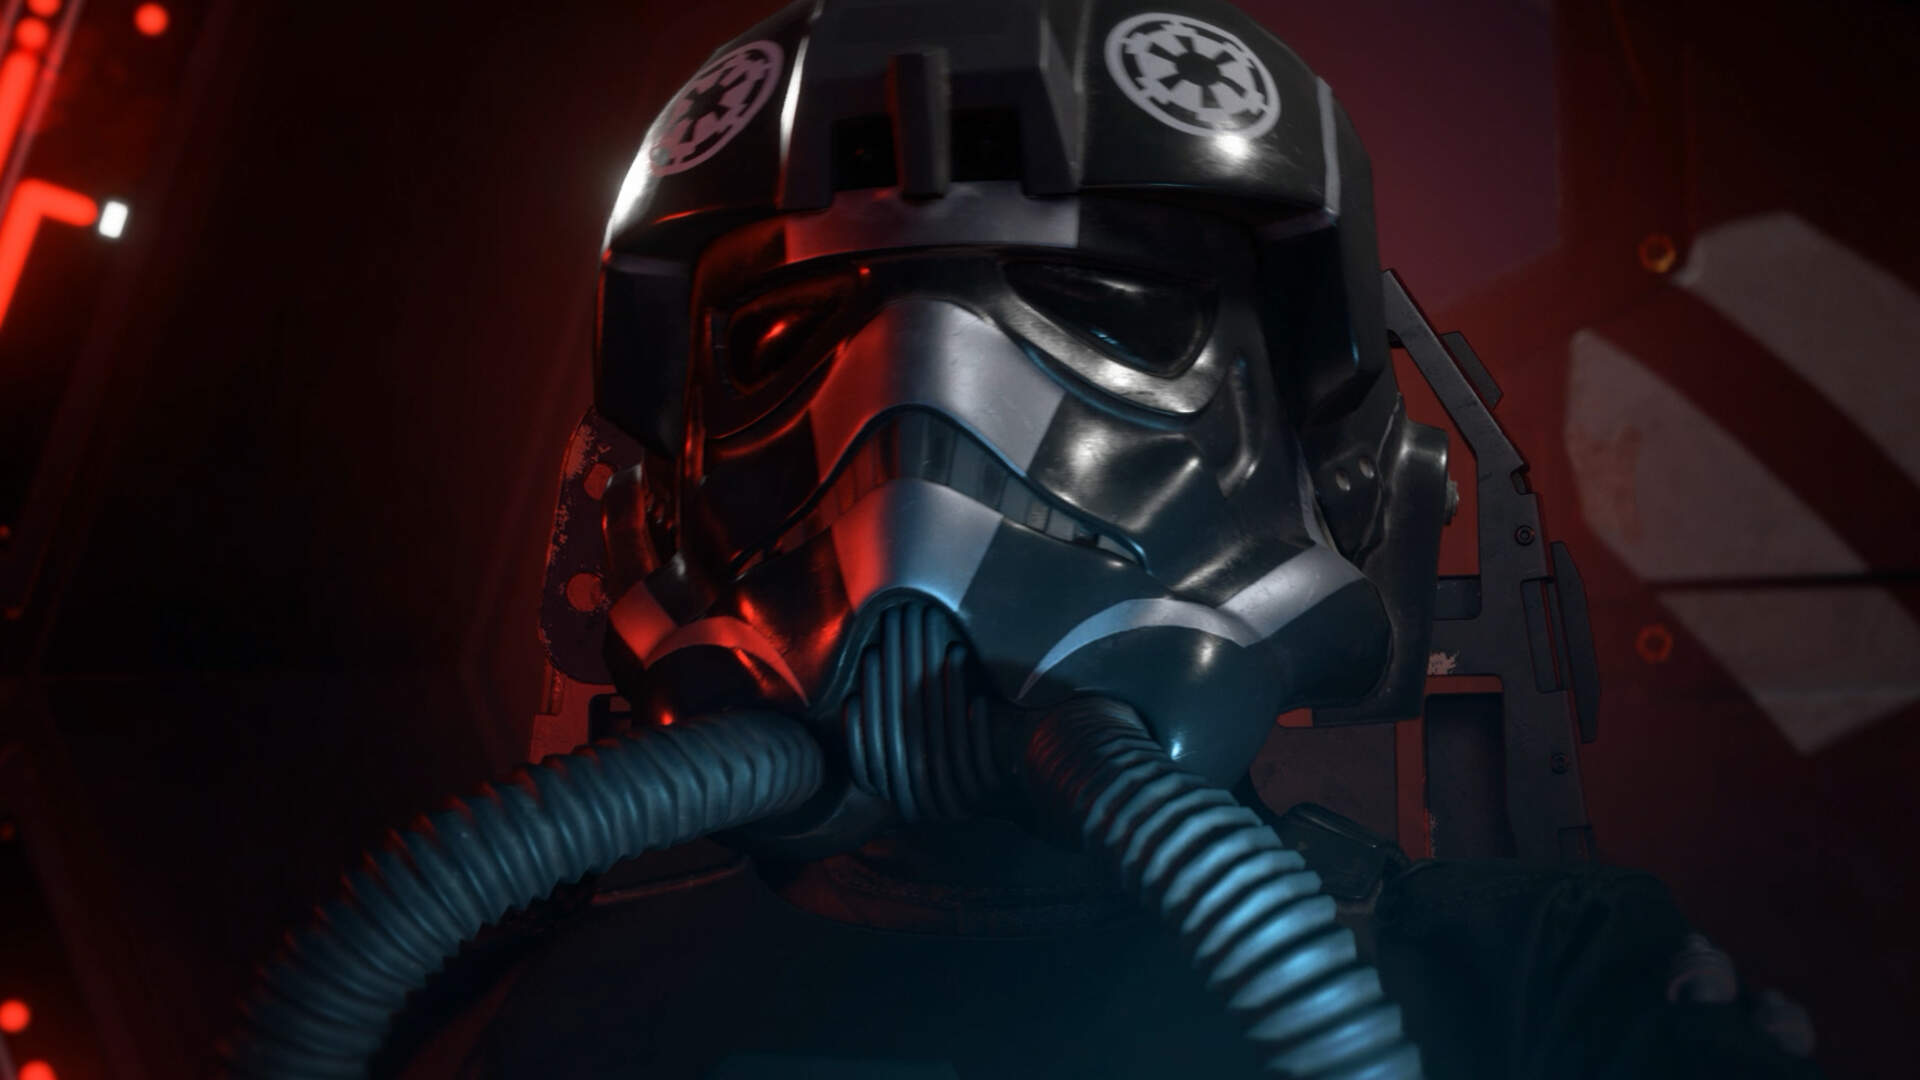 Star Wars: Squadrons Gets a Prequel Short Film Made With Lucasfilm and ILM